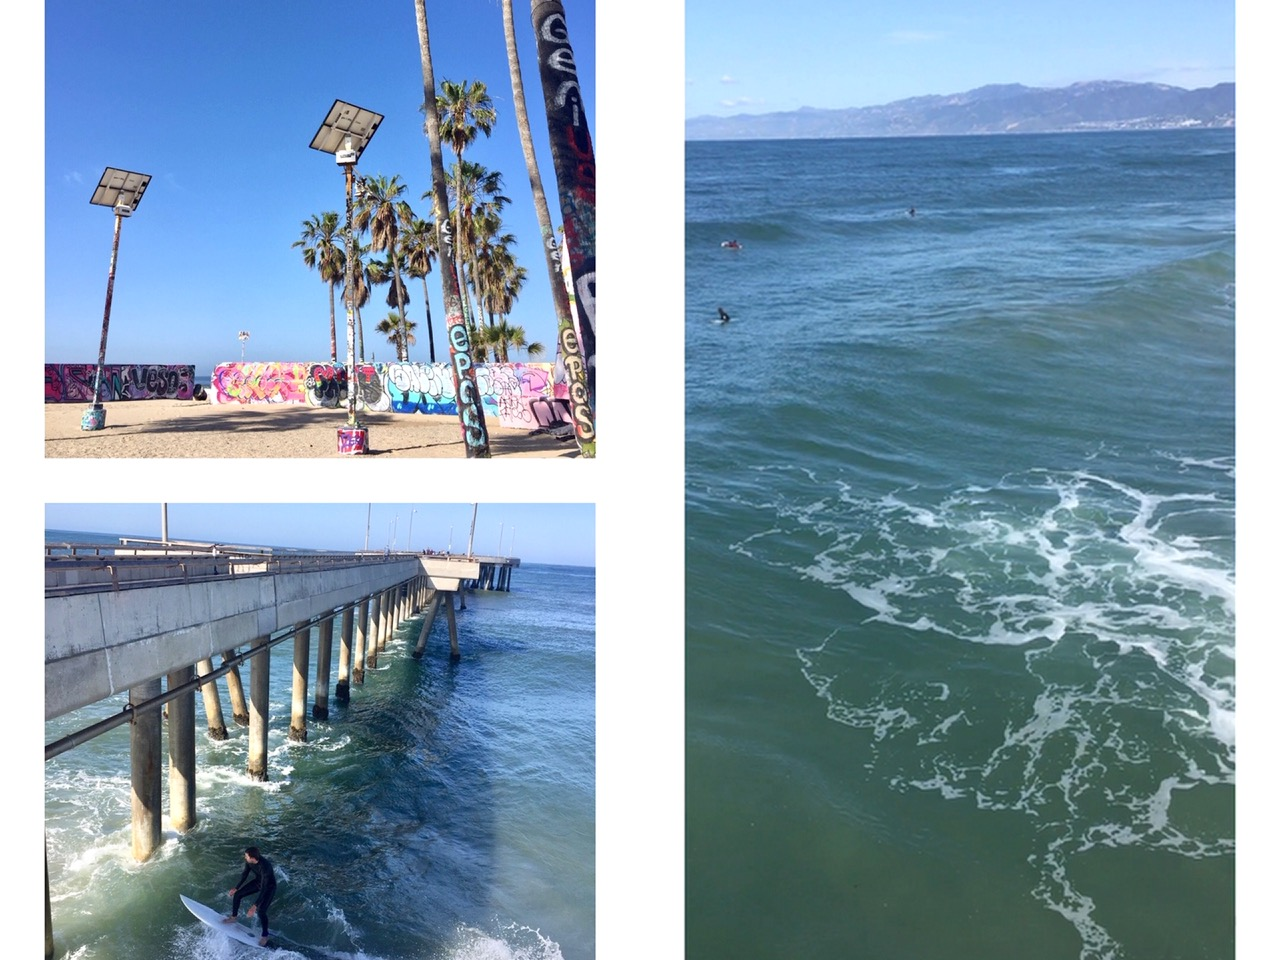 venice beach,mornign walk,cartes postales,californie,los angeles,aliceetfantomettre,aliceetfantometteencalifornie,travel,travel guide,voyage